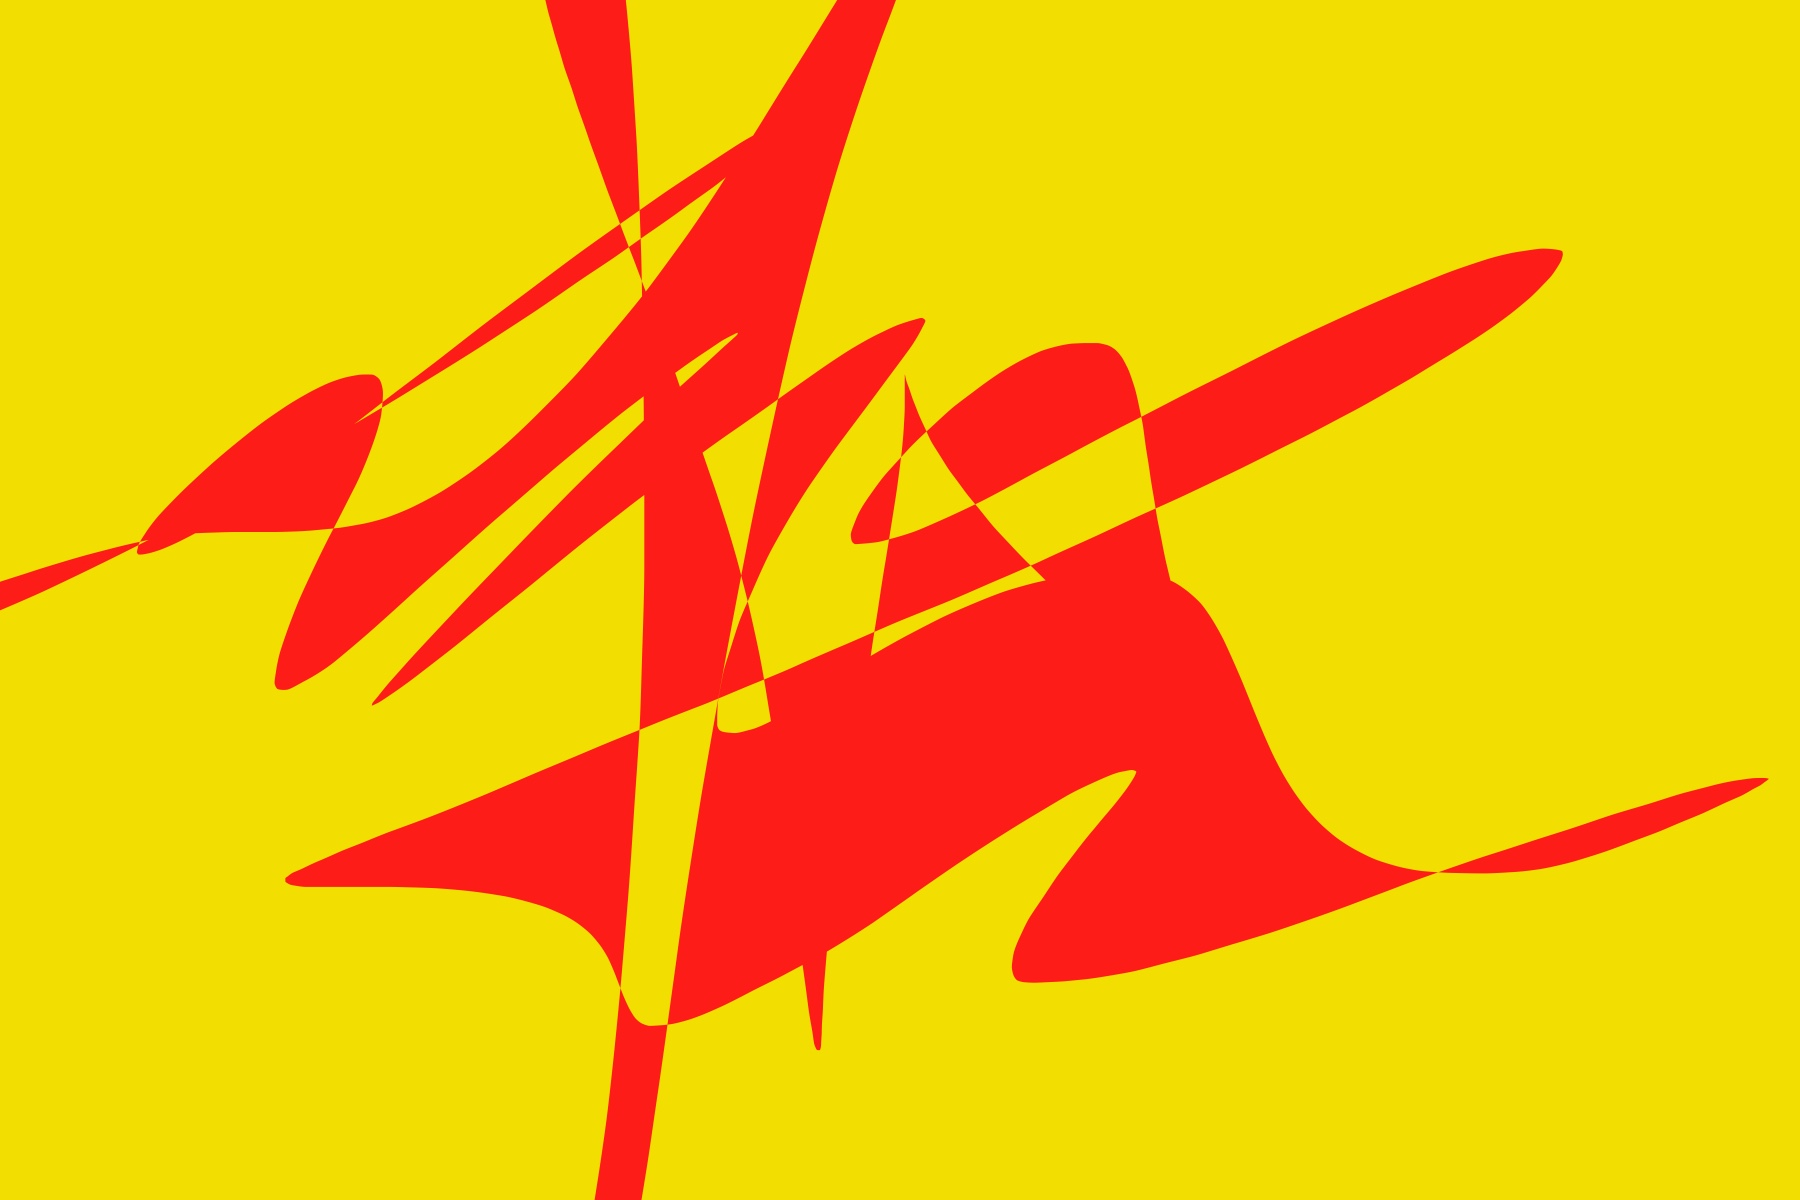 Red yellow abstract